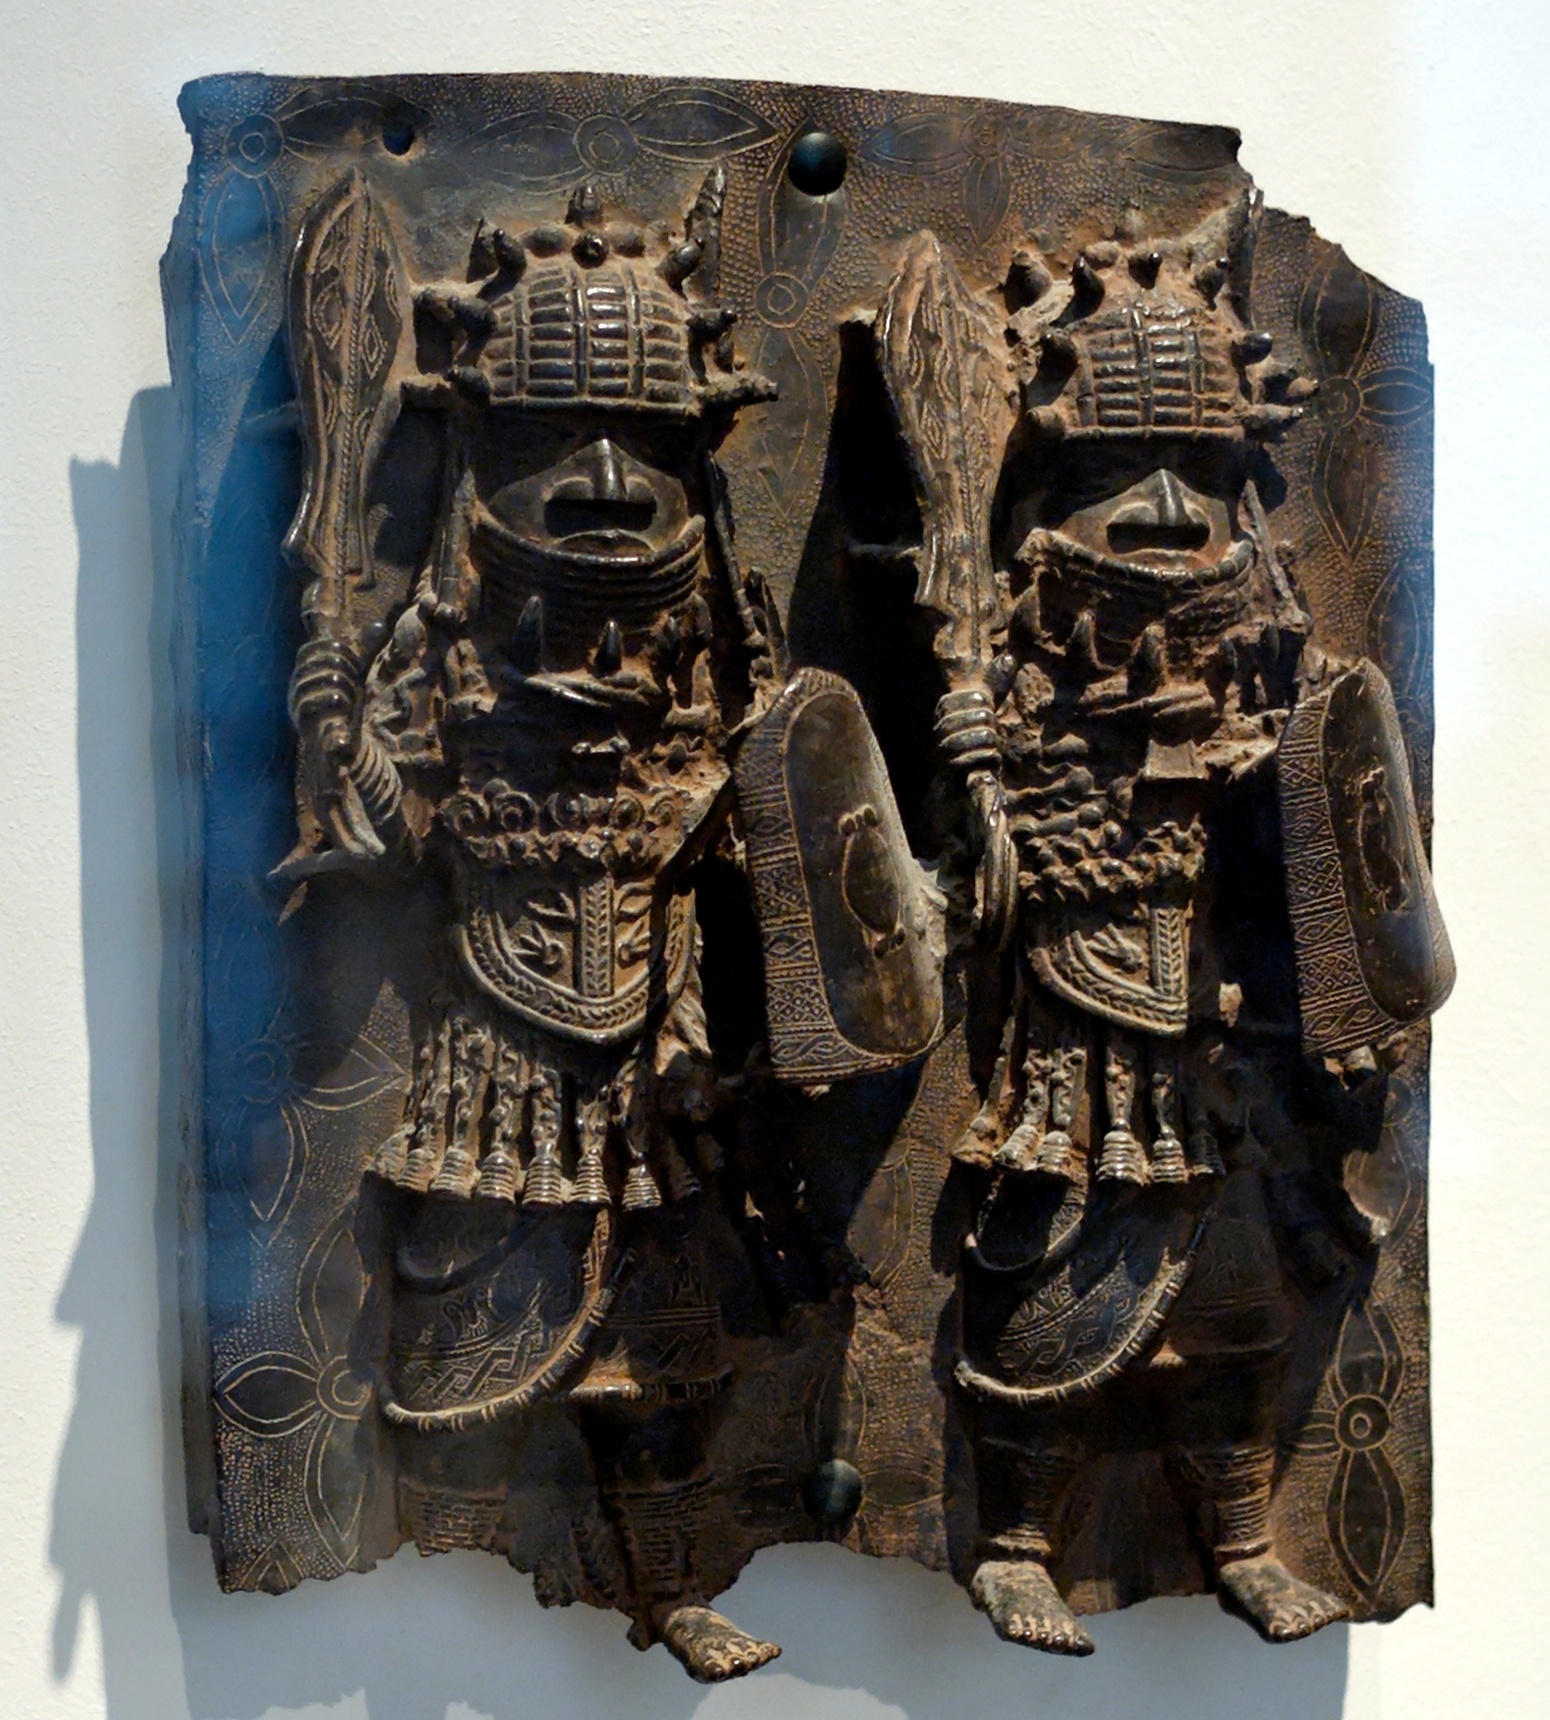 the kingdom of benin Benin and its royal court  benin was a powerful kingdom in west africa from around 1300 ce until benin city's invasion by the british in 1897.